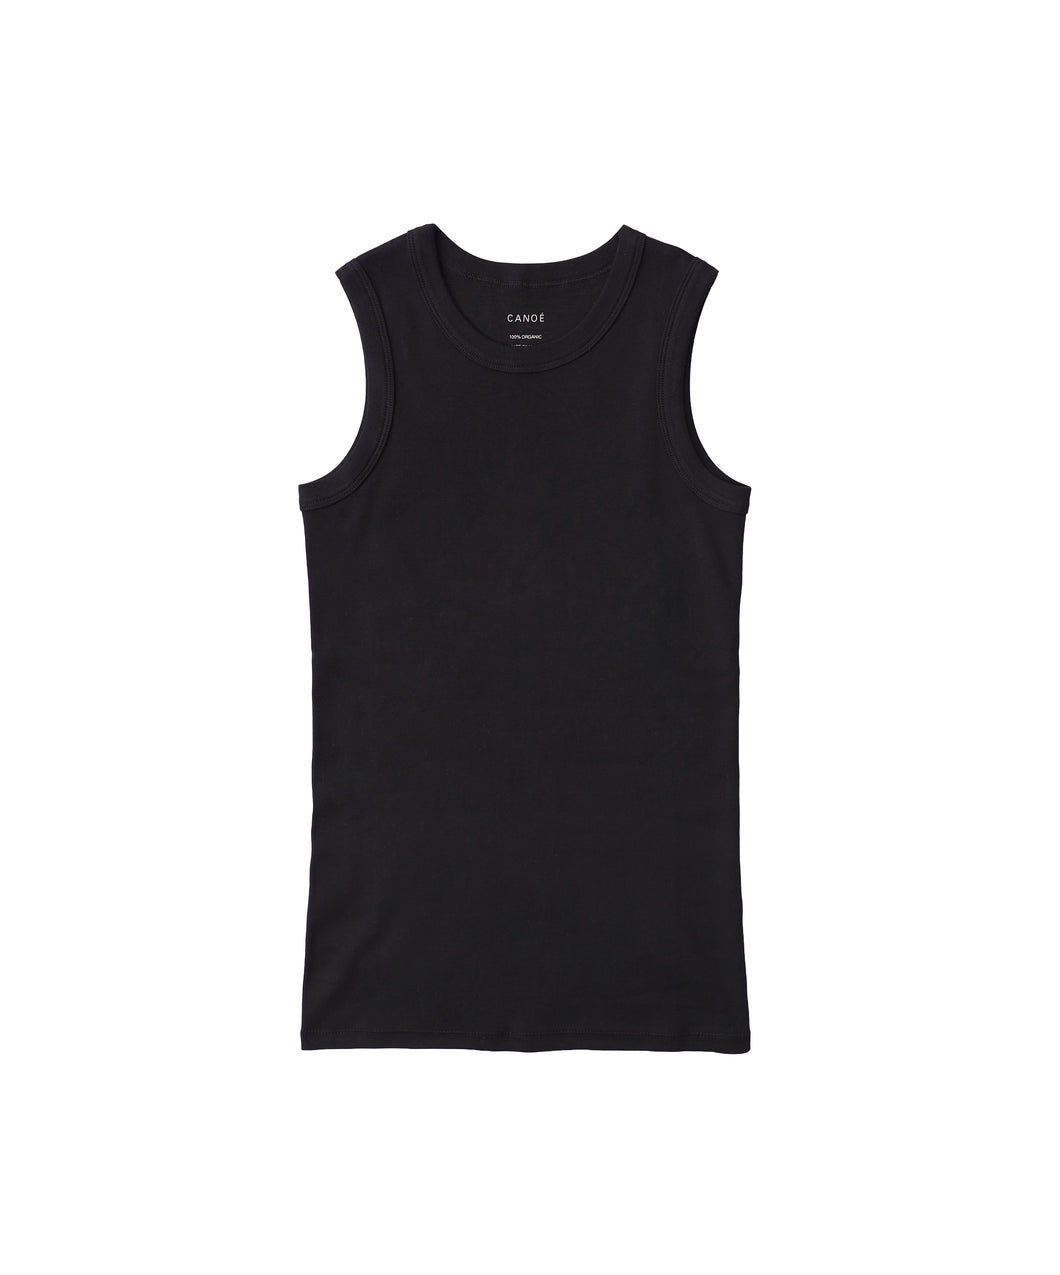 CANOÉ Ultimate Pima Organic Cotton TIGHT FIT TANK TOP : BLACK #CS0010b made-to-order only